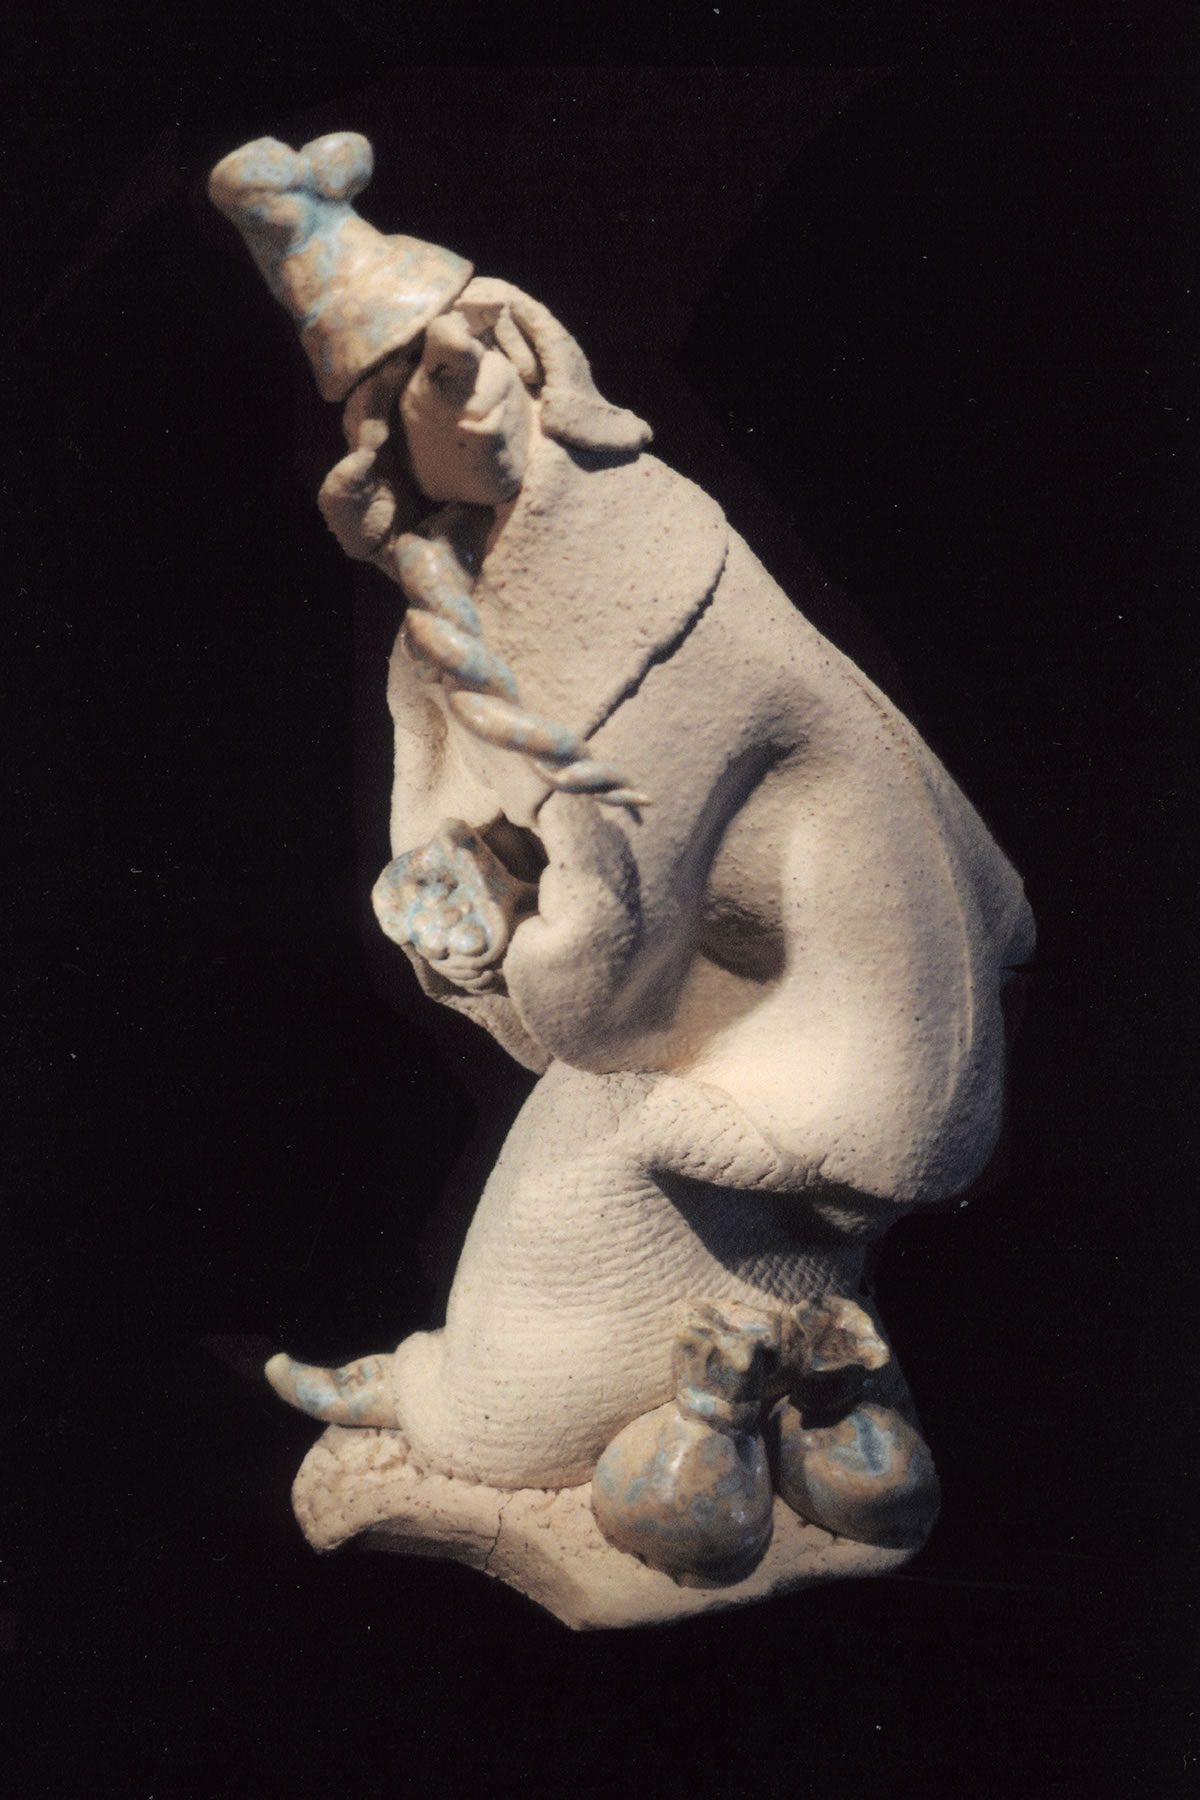 Sculpted stoneware figure by East Yorkshire ceramicist Stewart Taylor